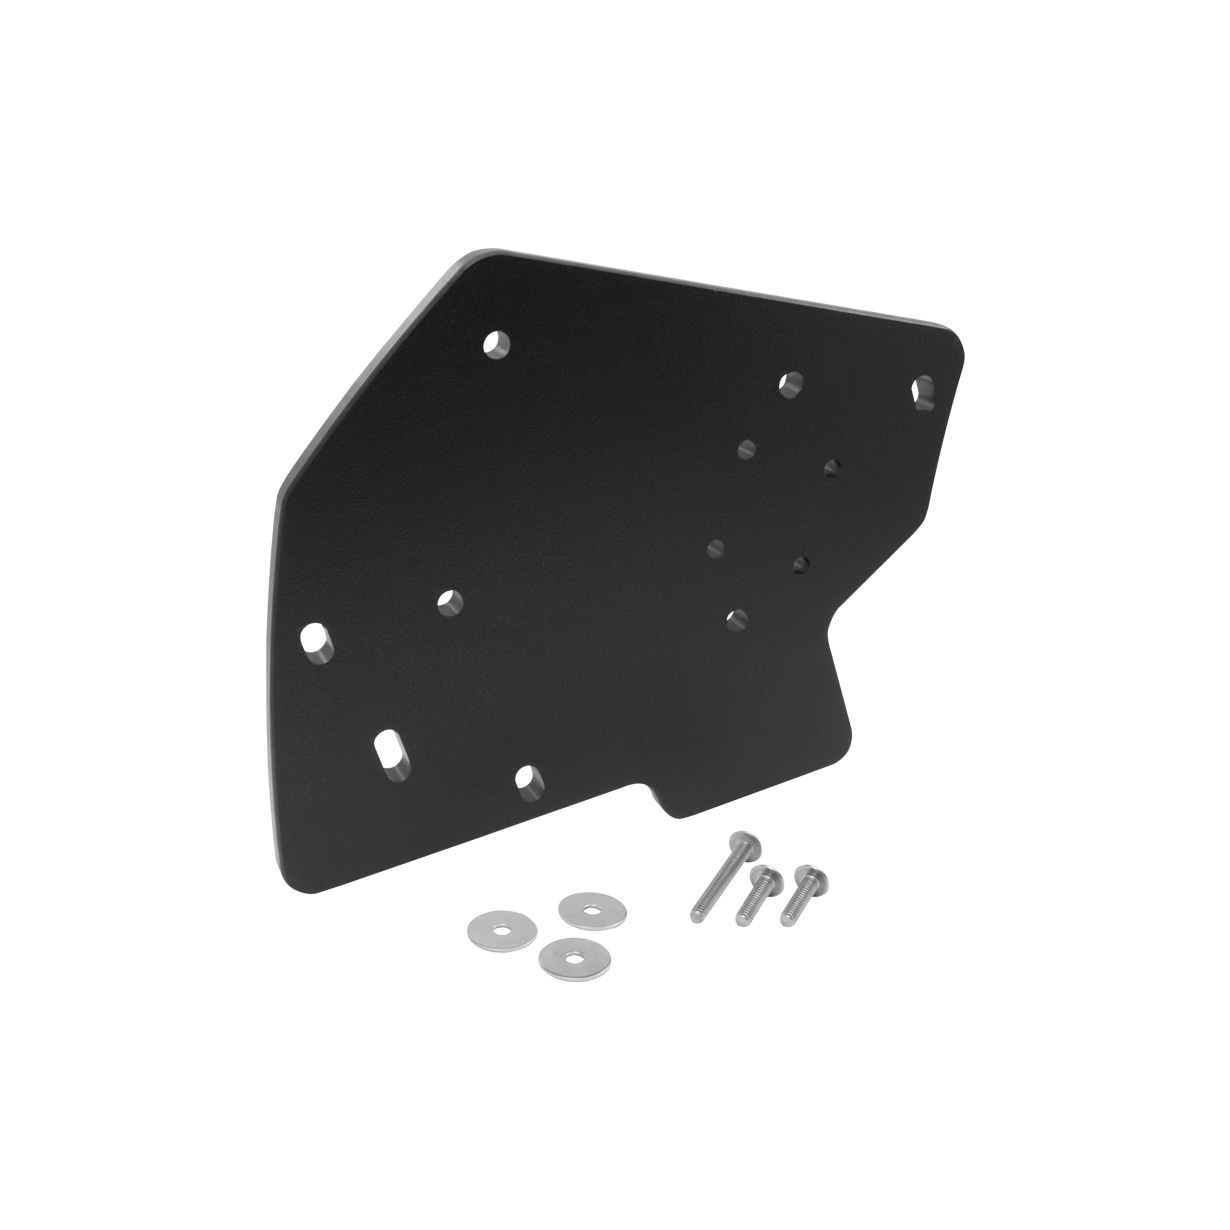 STERN MOUNTING PLATE FOR ATAK